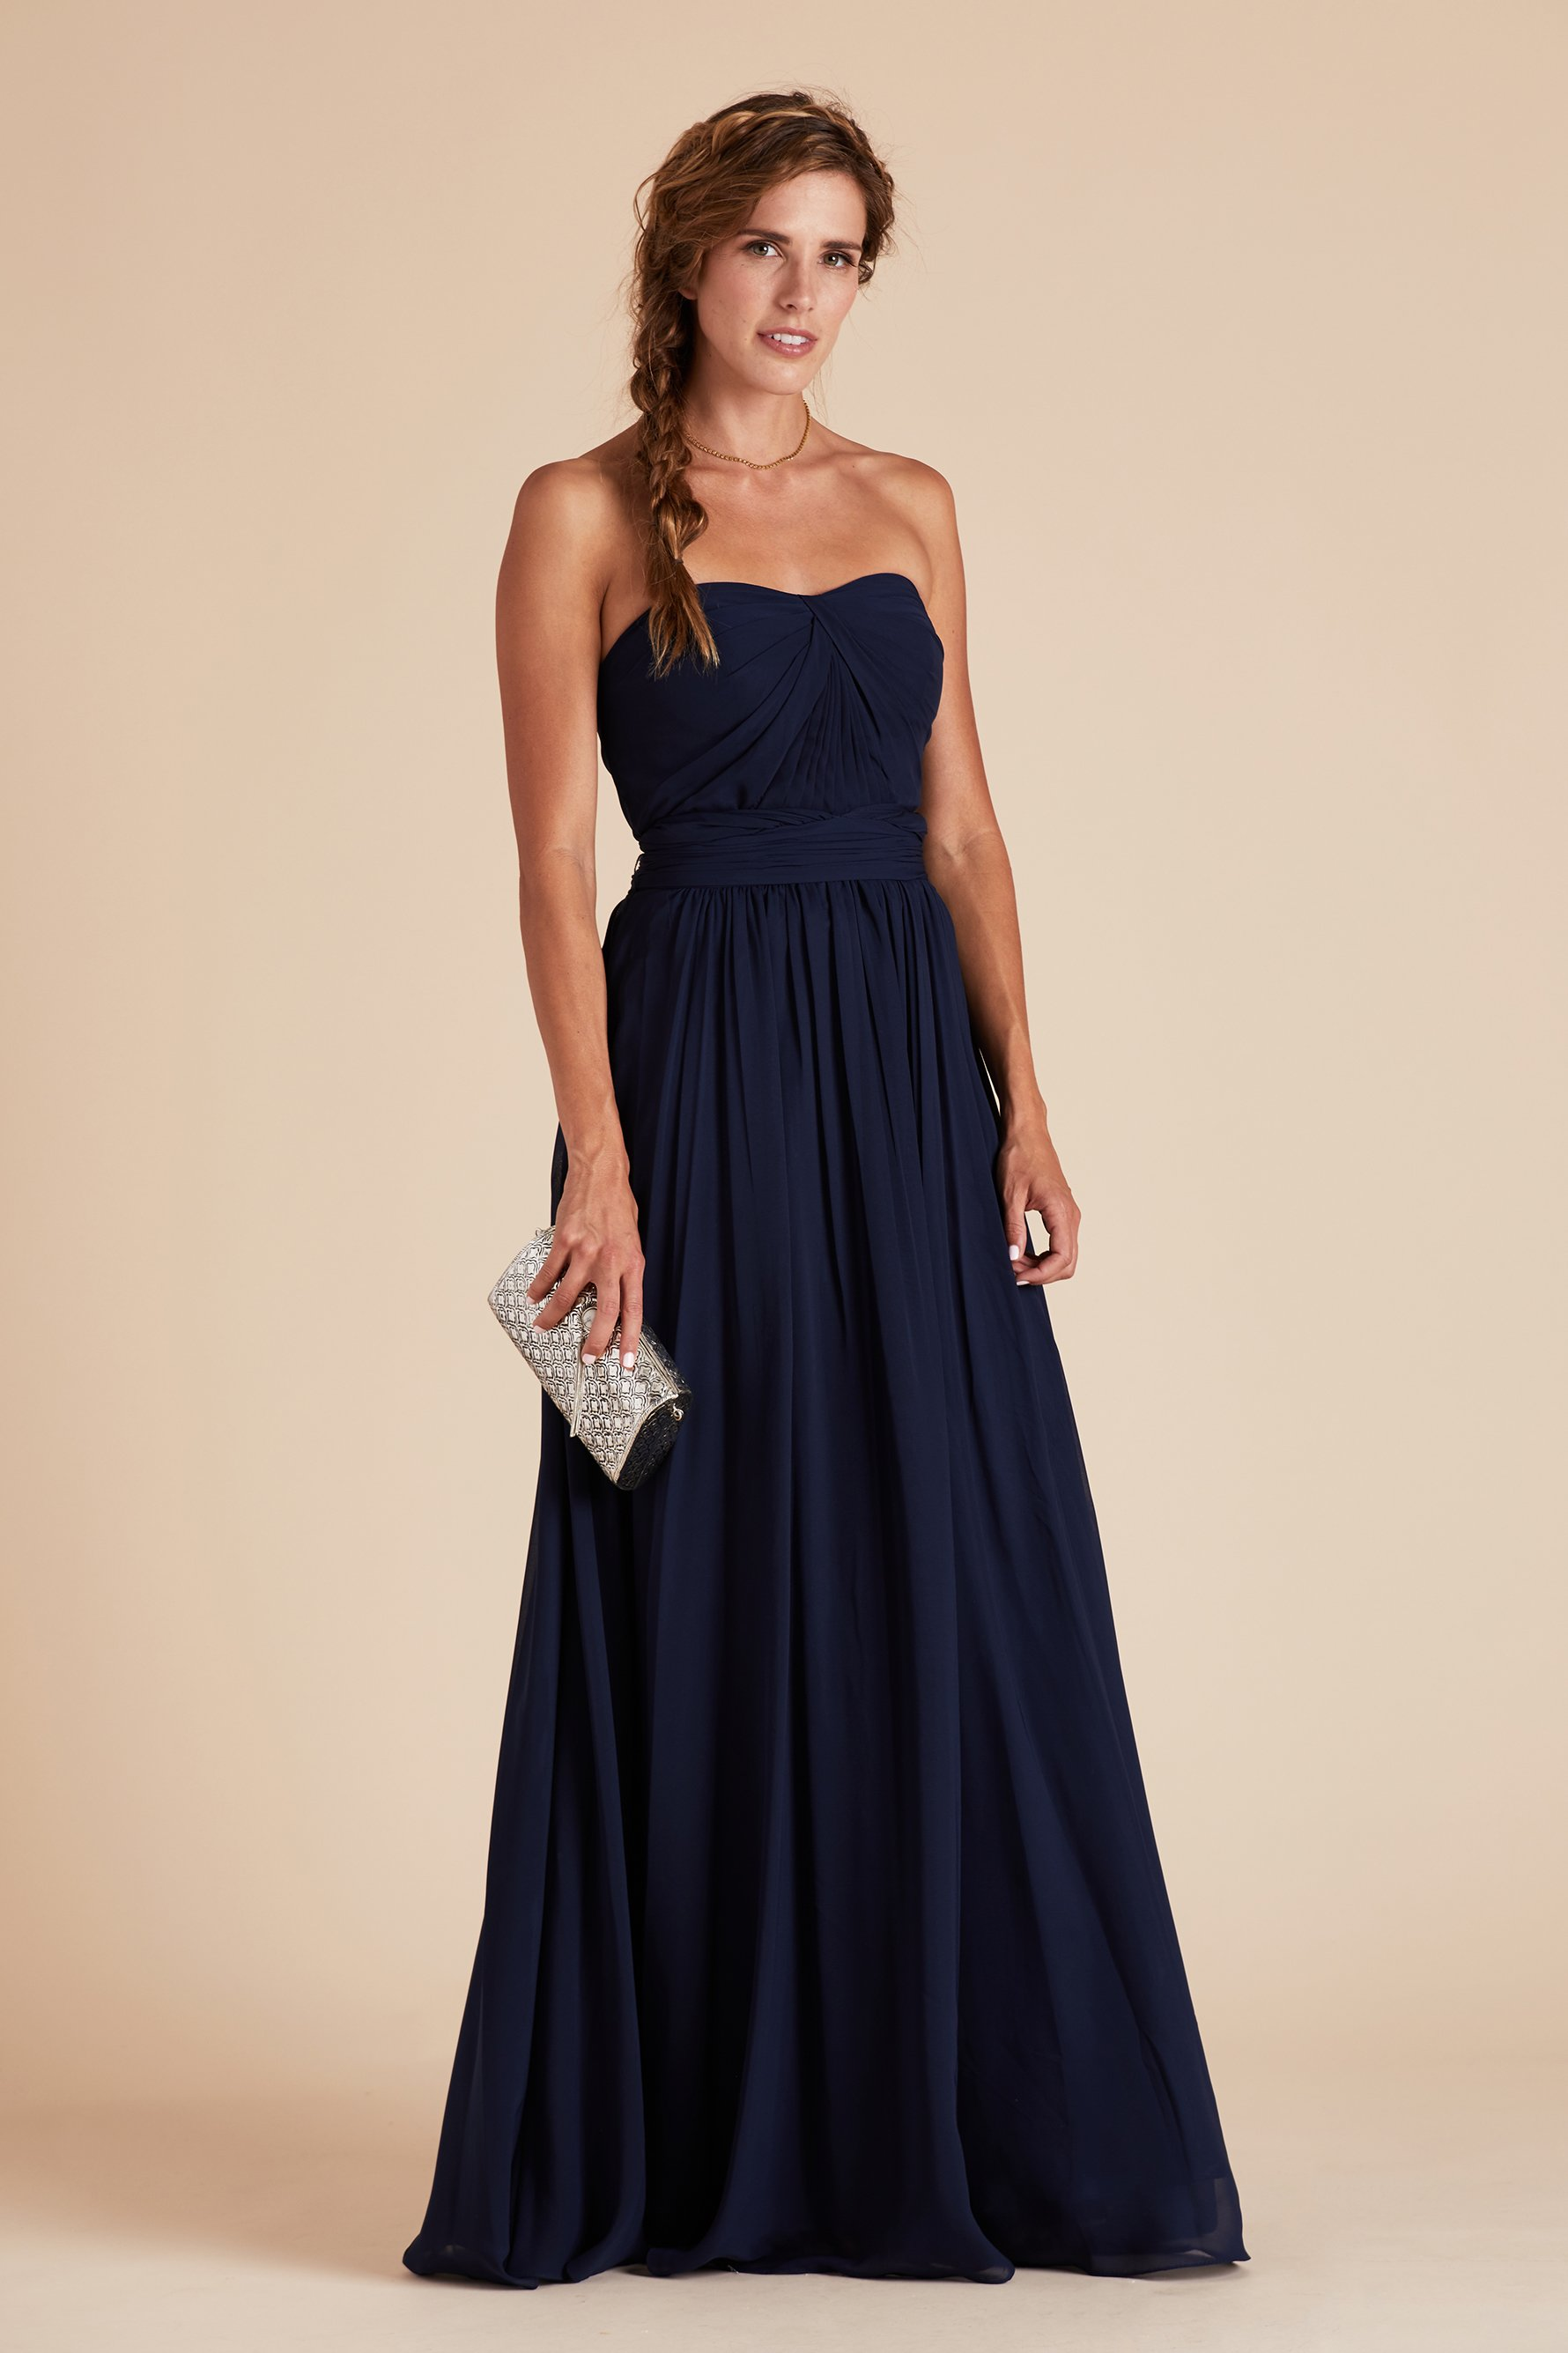 Gracie Convertible Dress Navy Bridesmaid Dresses Under 100navy